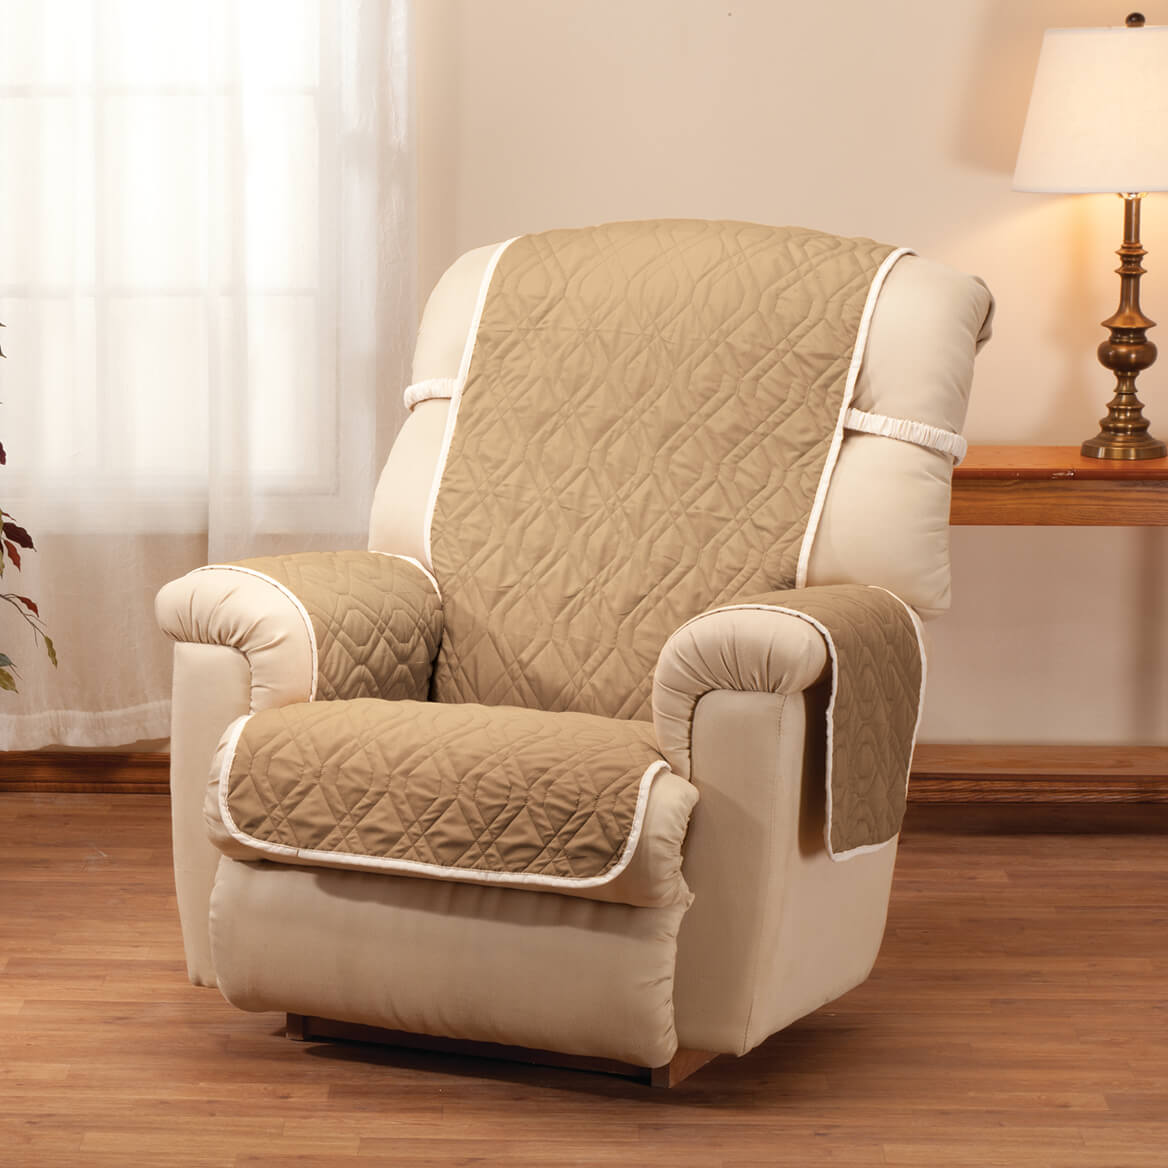 chair covers to buy thonet bentwood deluxe reversible waterproof recliner cover walter